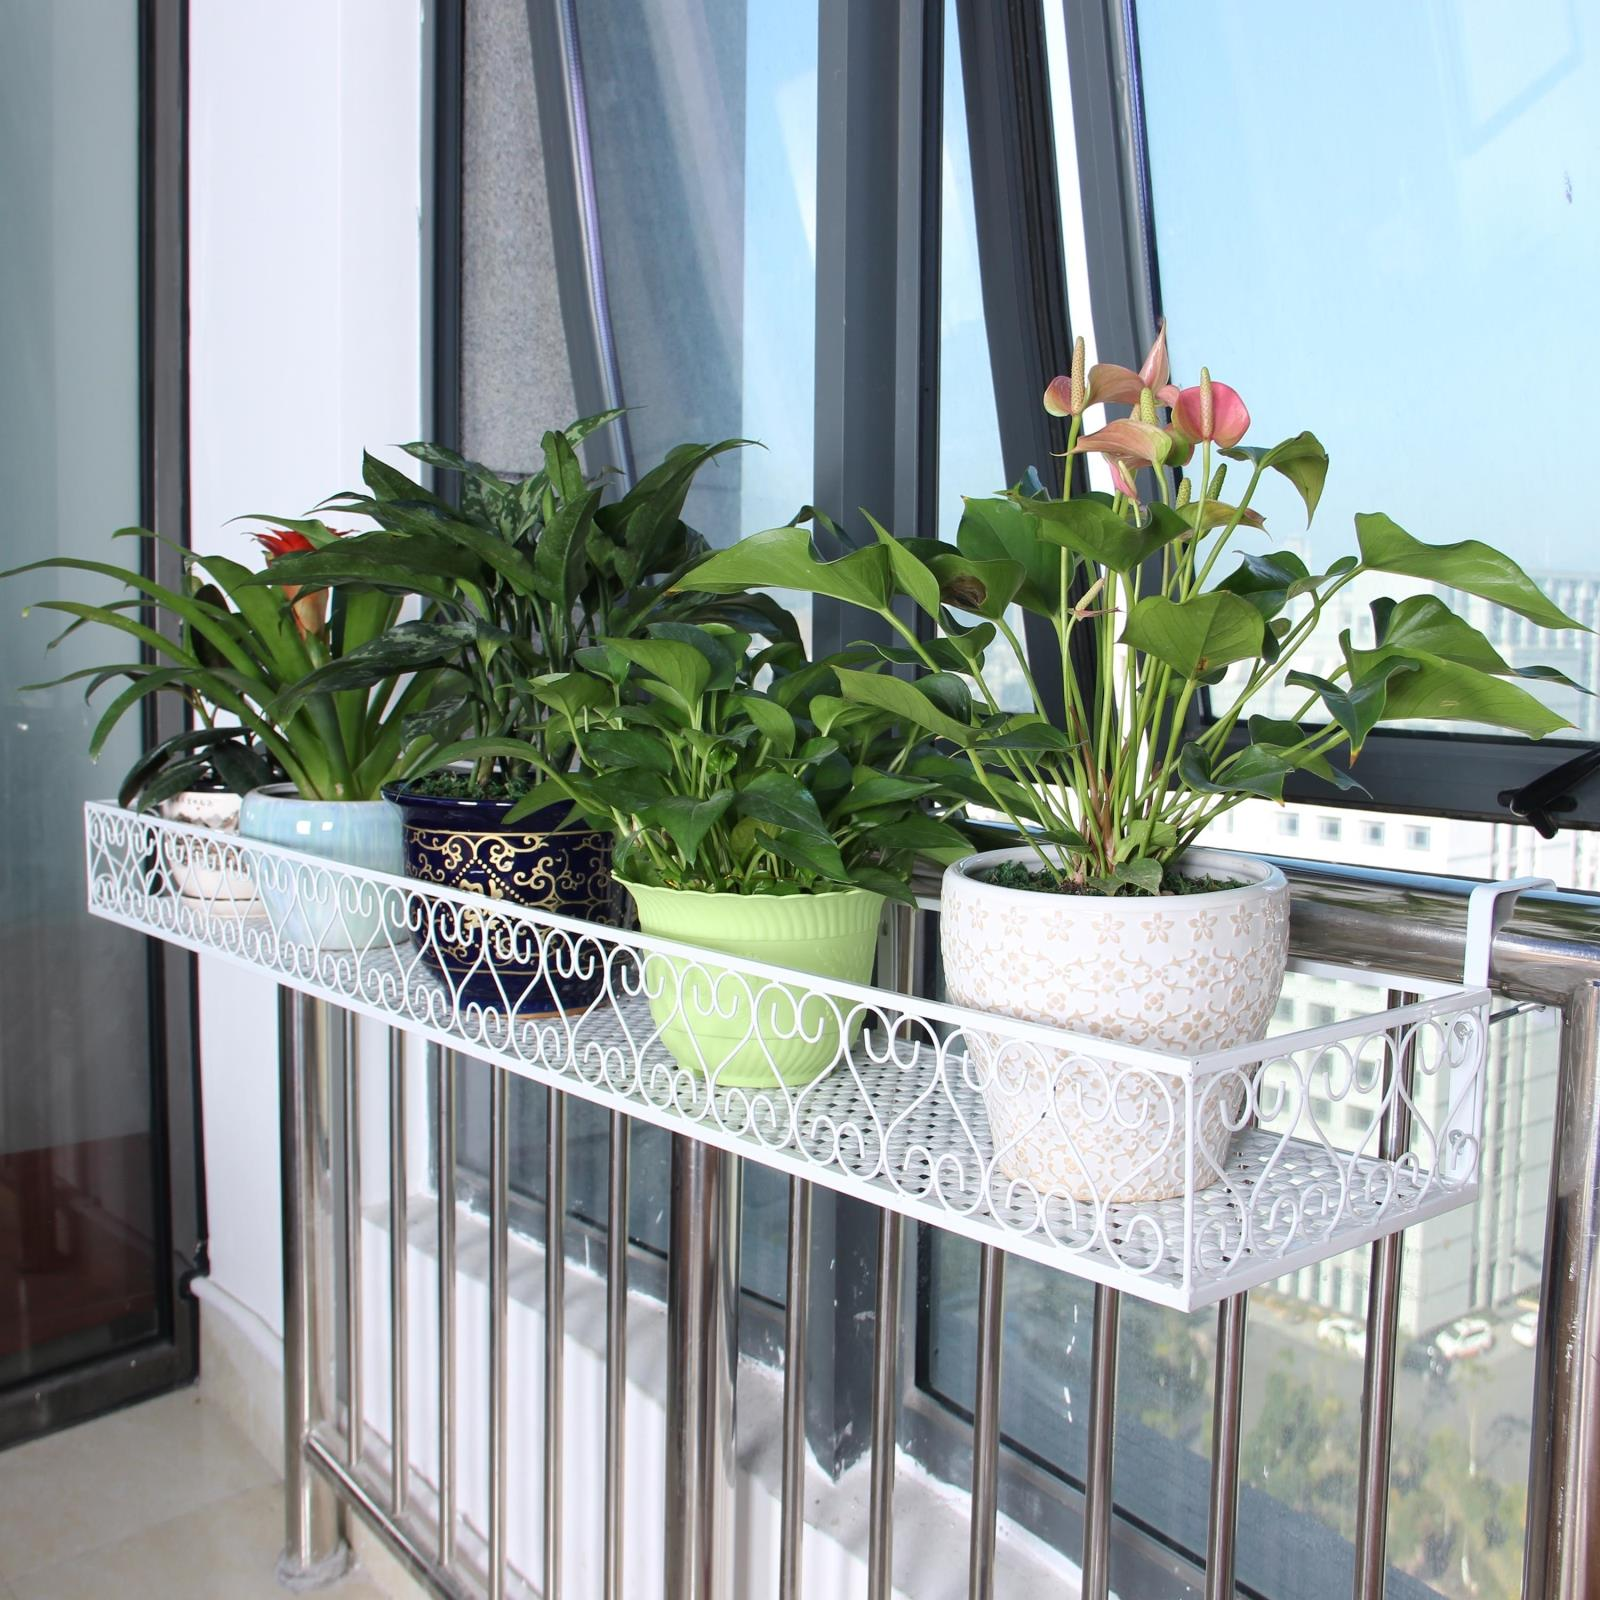 Shelves for flowers on the balcony - home decoration.